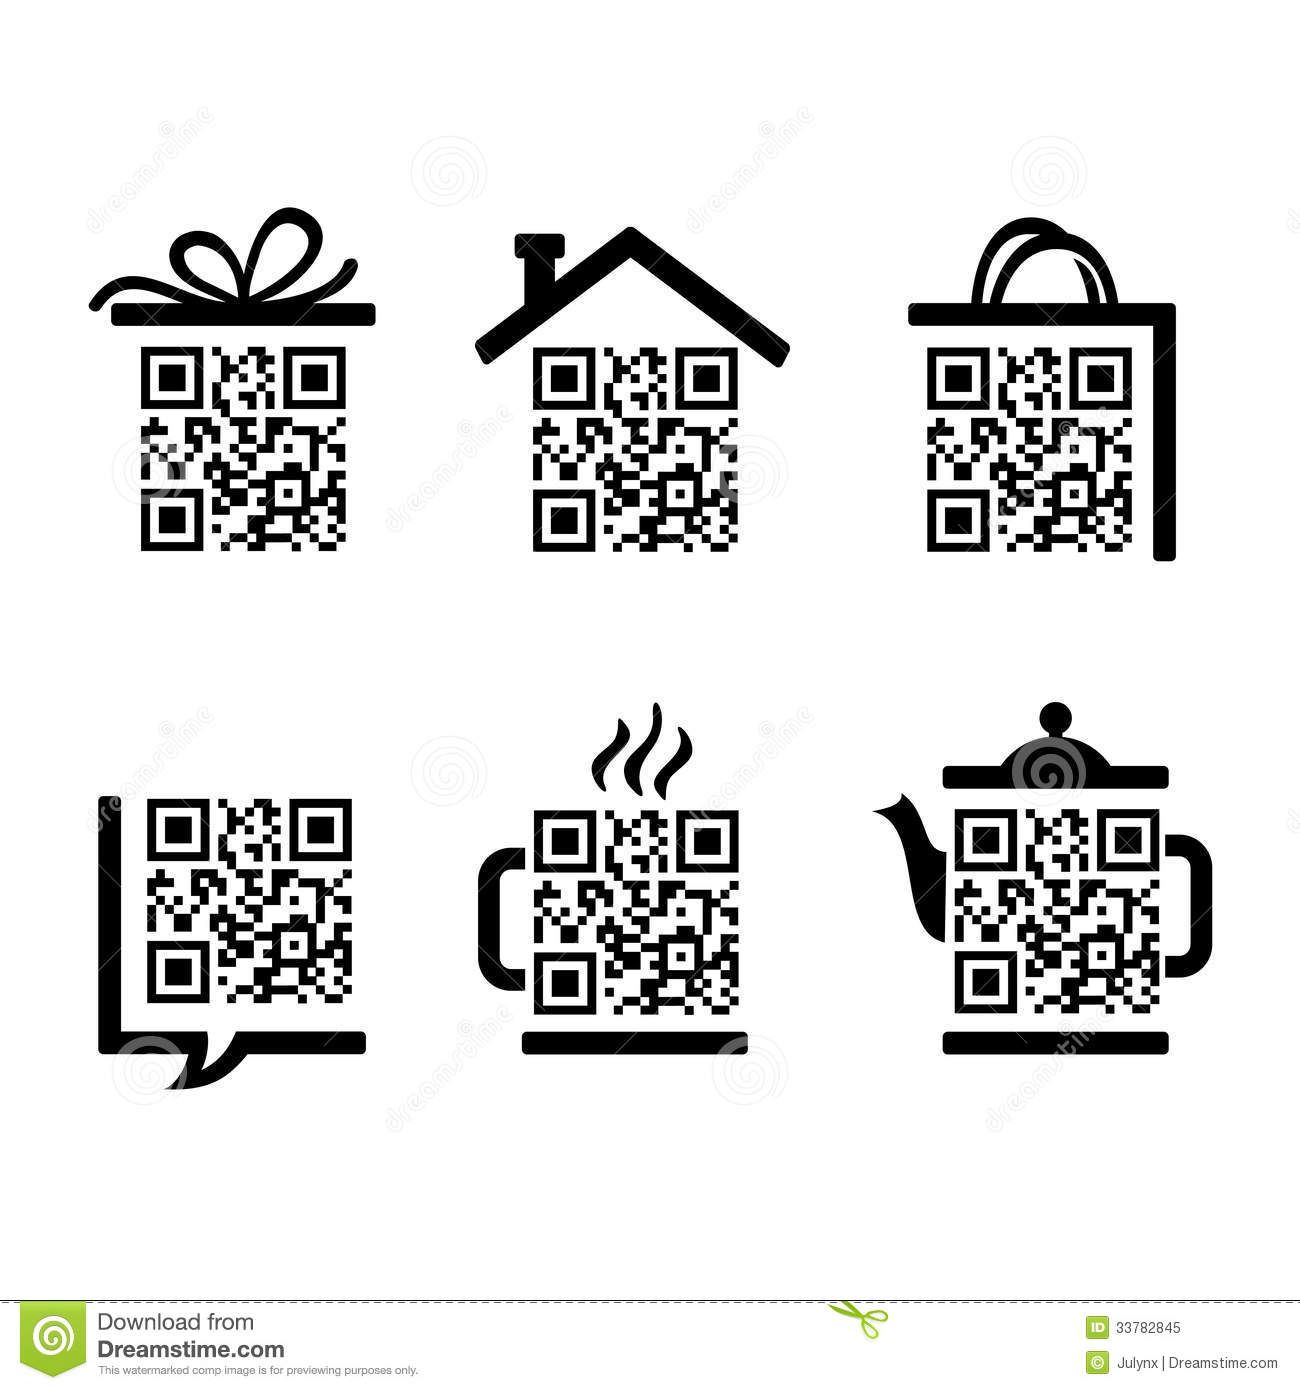 QR-Code. Set pictograms stock vector. Illustration of